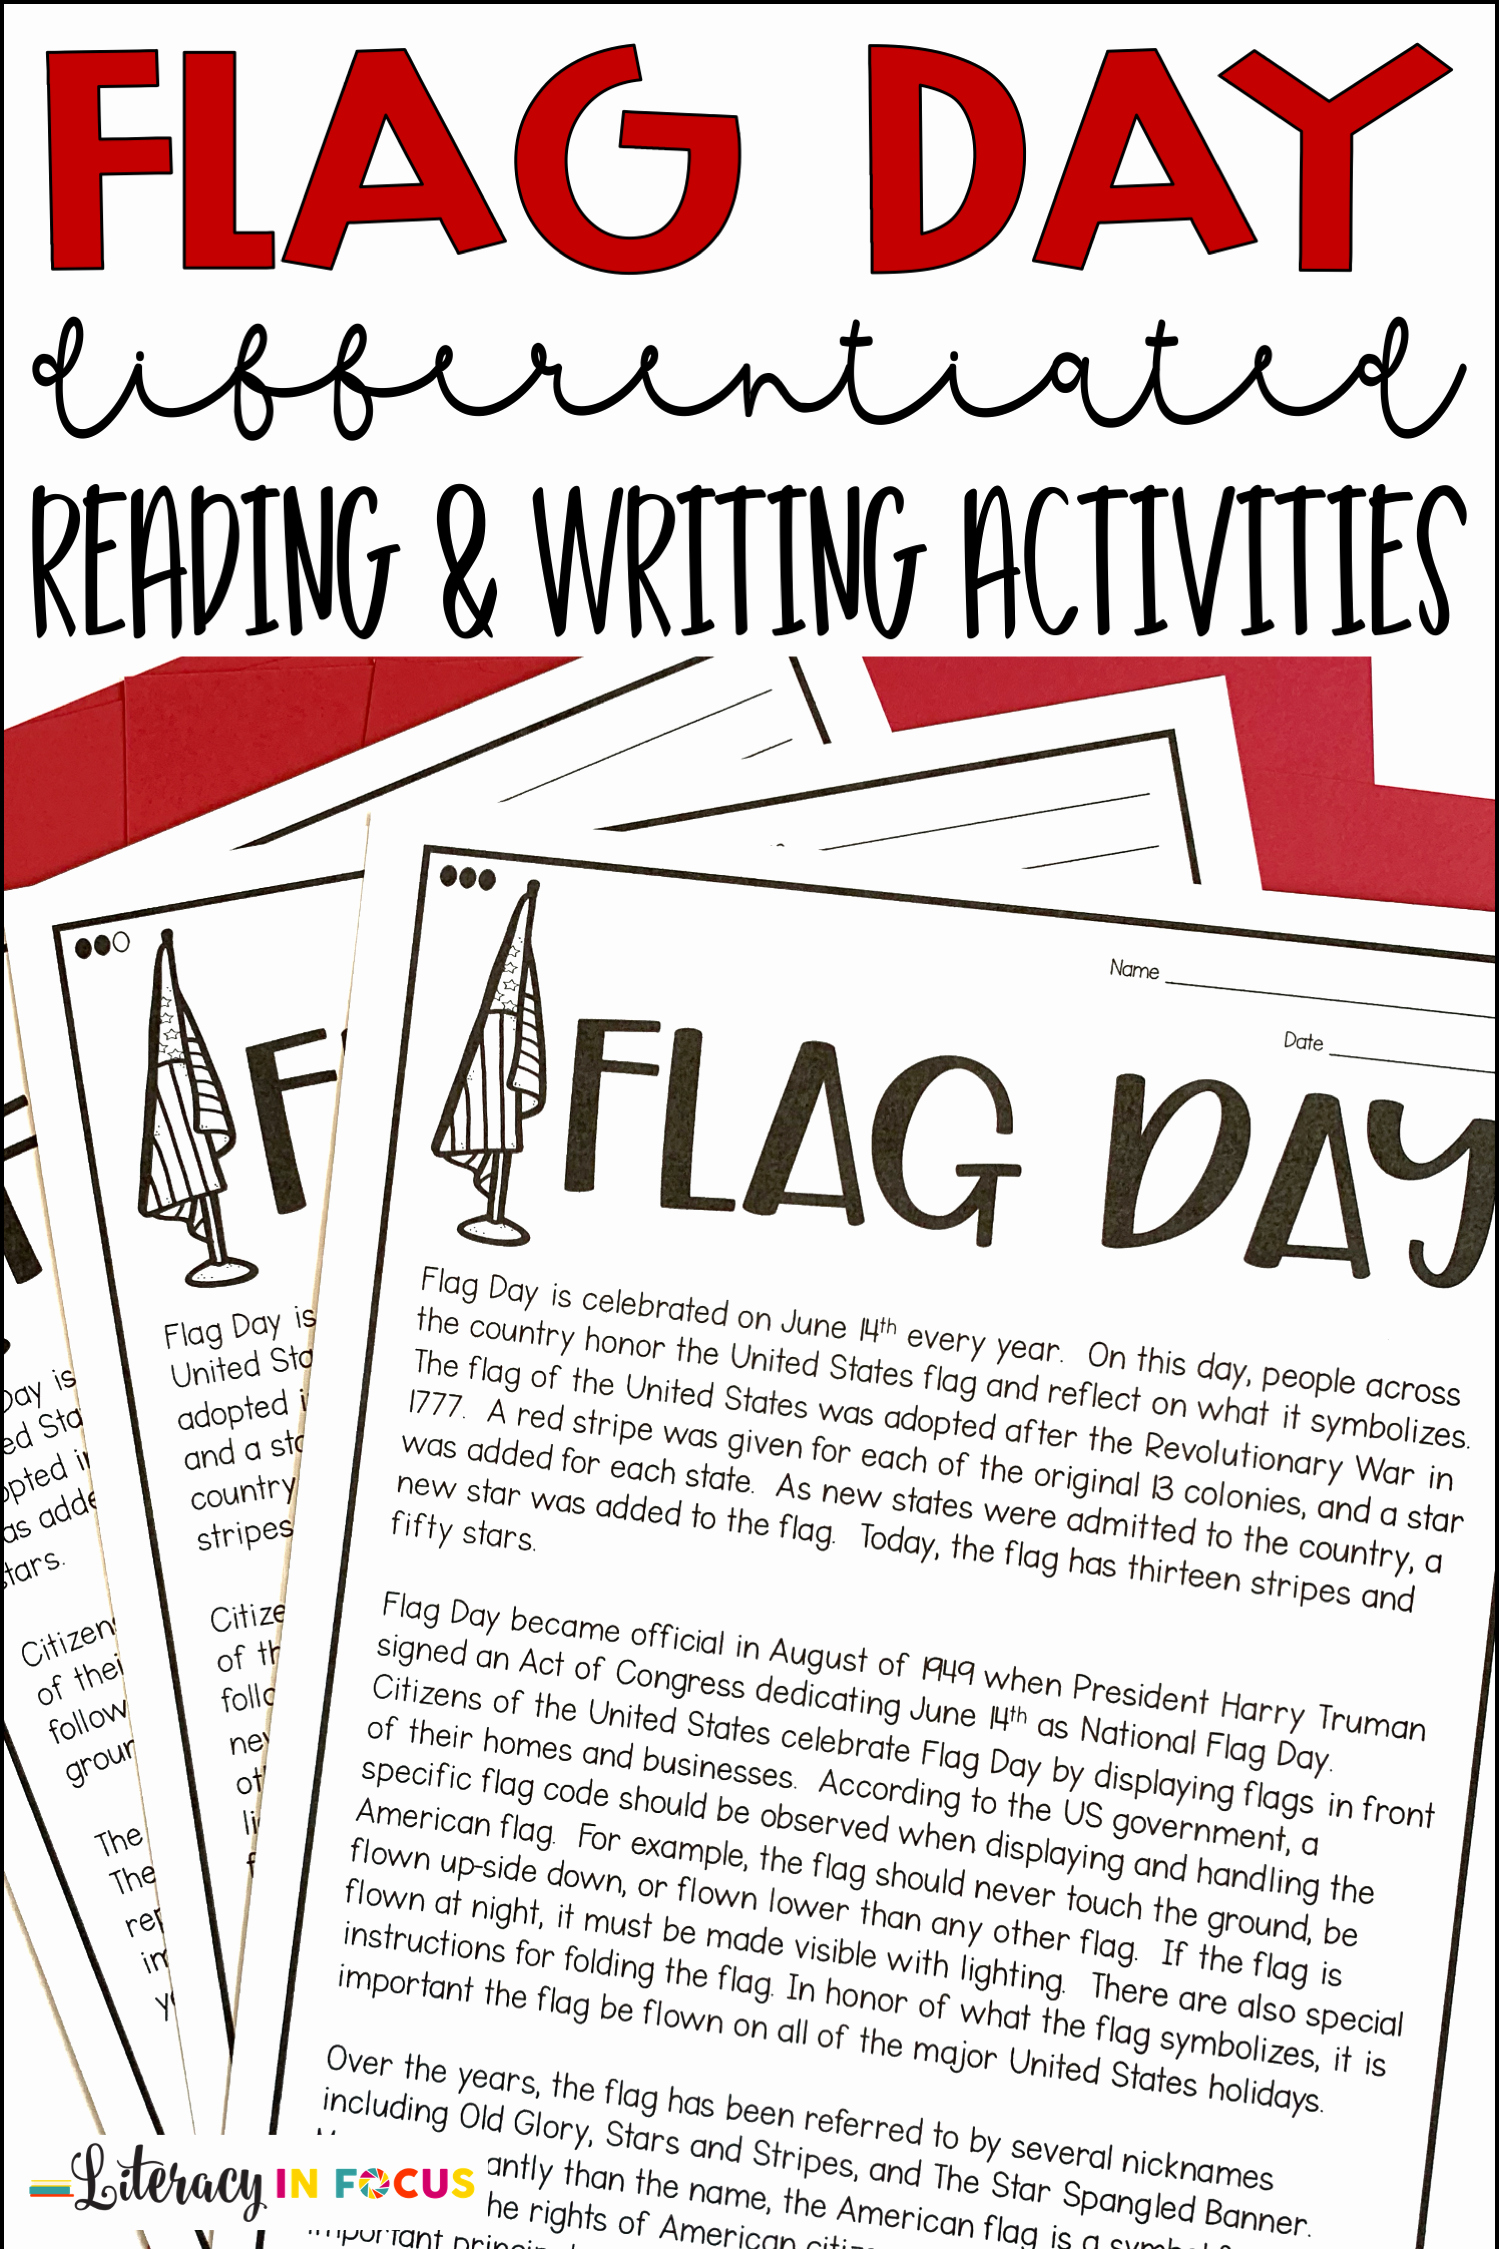 Flag Day Reading Comprehension Worksheets Unique Flag Day Reading and Writing Activities In 2020